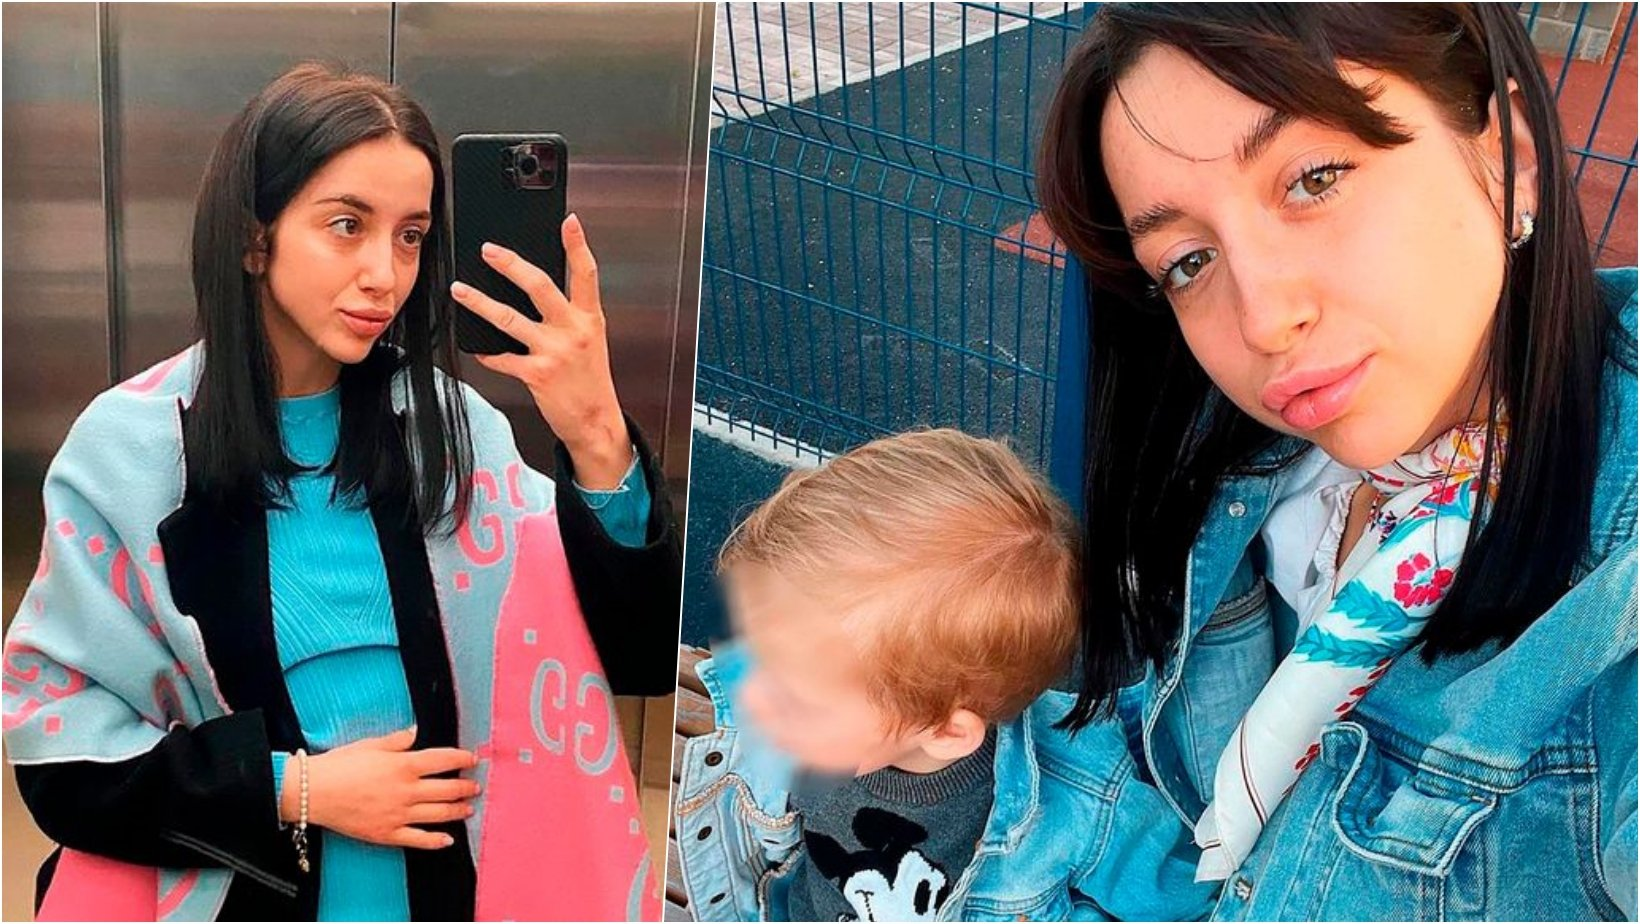 6 facebook cover 22.jpg?resize=1200,630 - 'Spiritual' Mother Cuts Her 2-Year-Old Son Open In An Attempt To CAST OUT His Demons